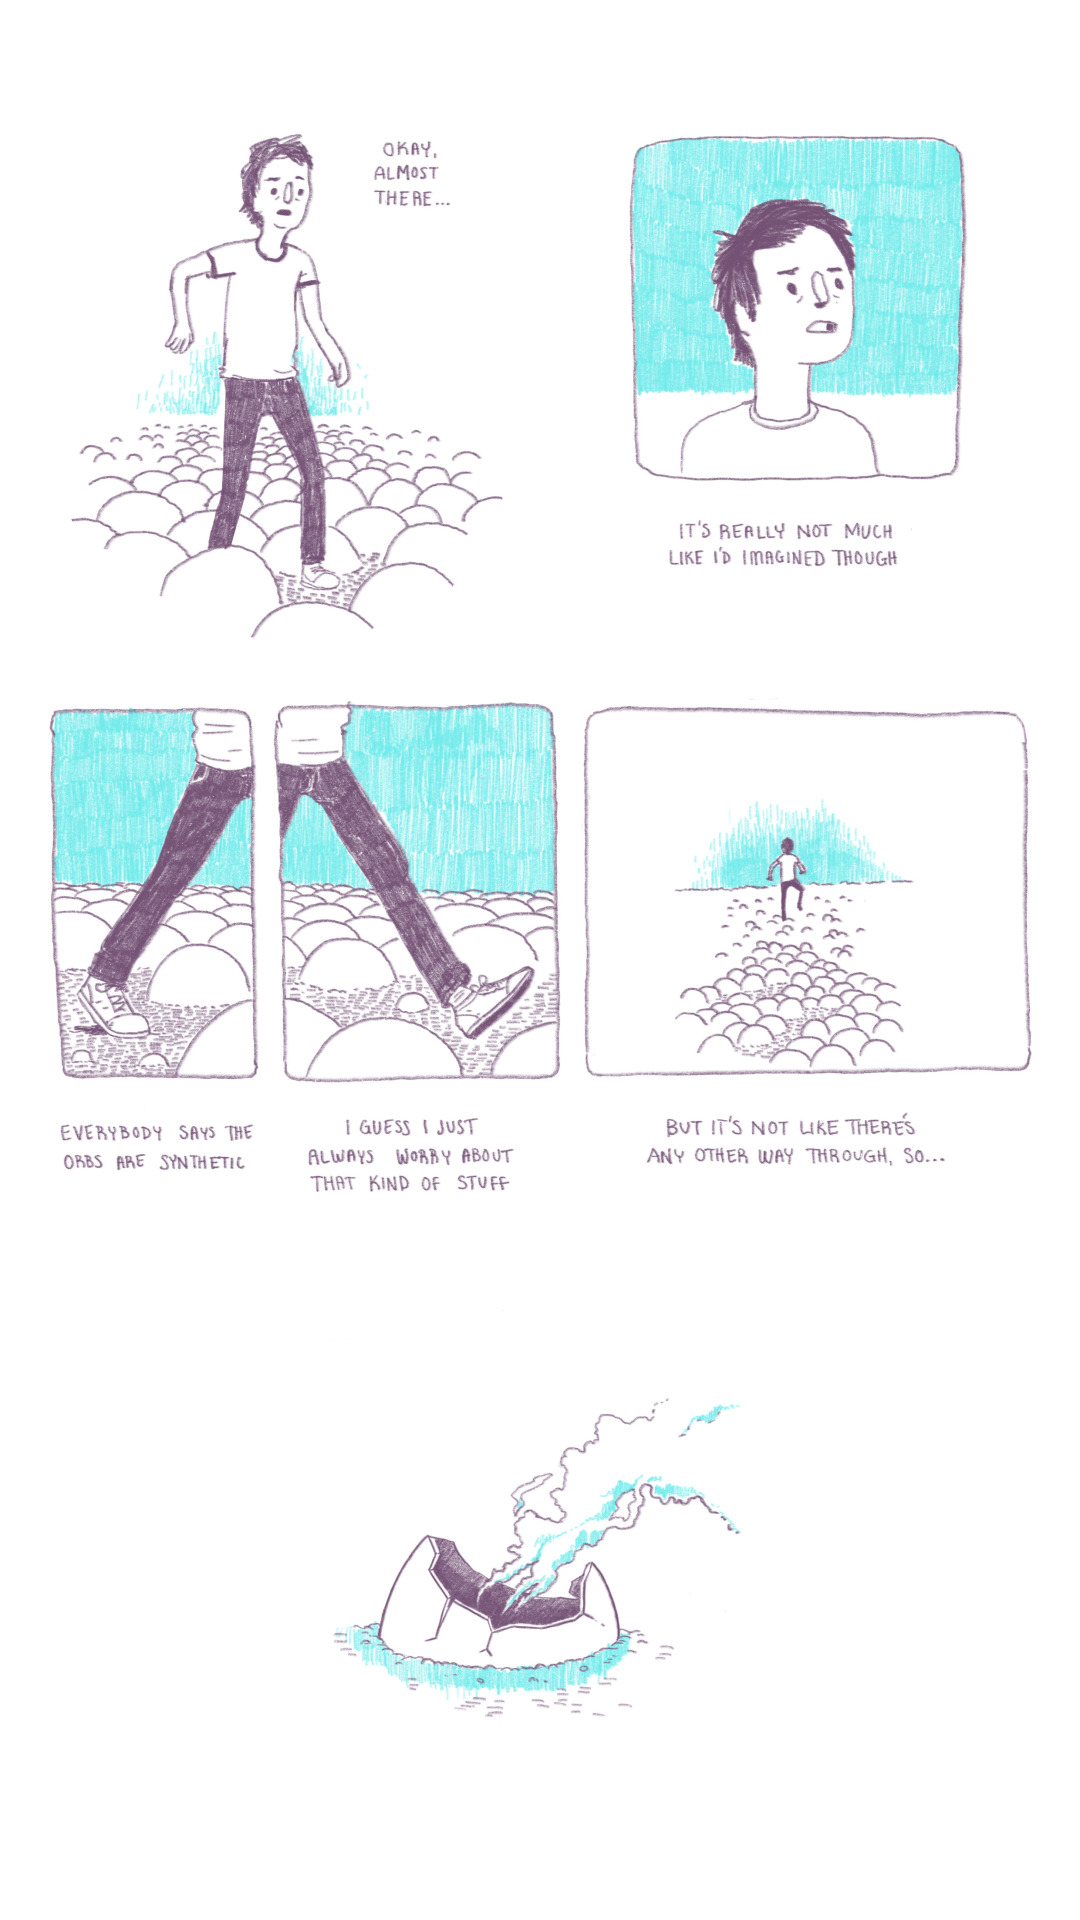 I made a little comic on the plane. Not really sure what it means but I like it.